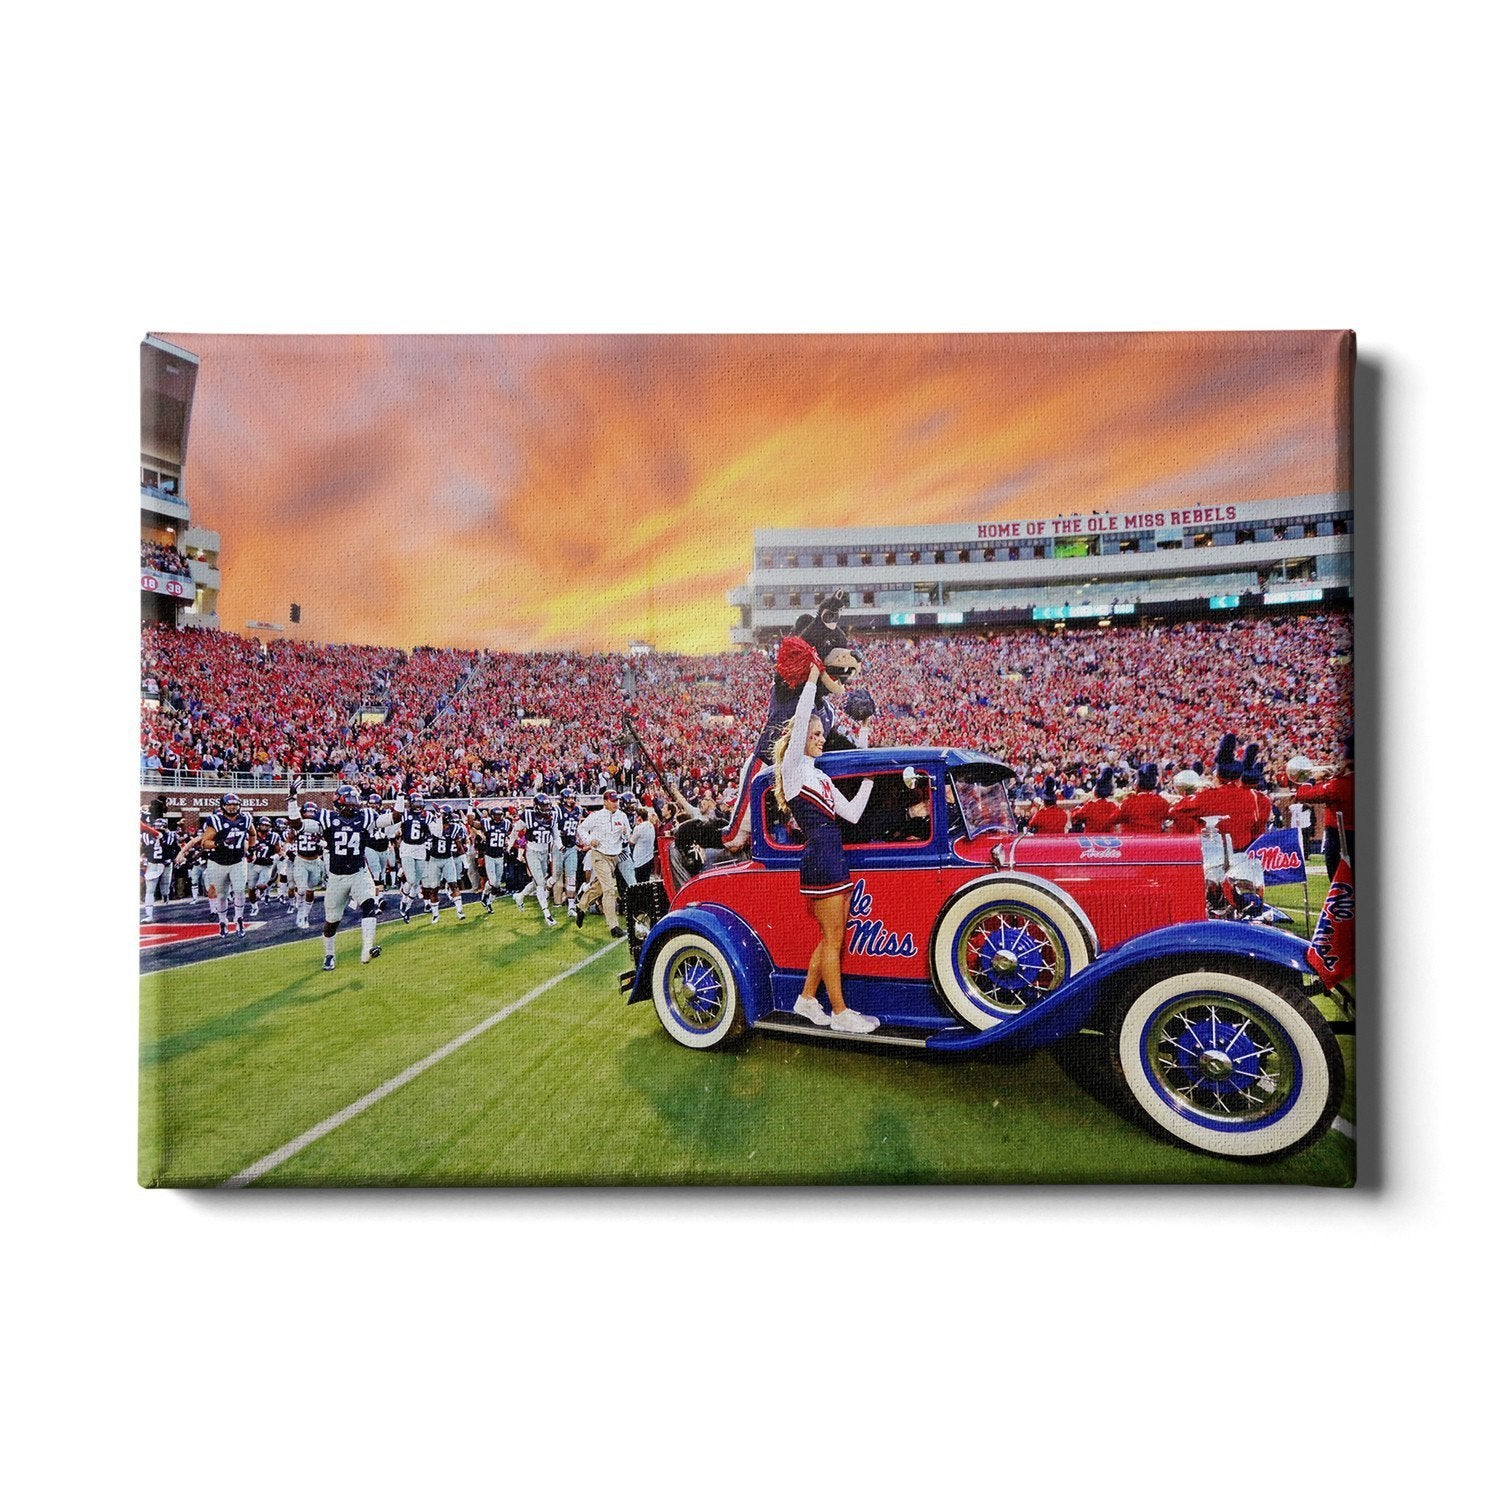 Ole Miss Rebels - Home of the Ole Miss Rebels - College Wall Art #Canvas